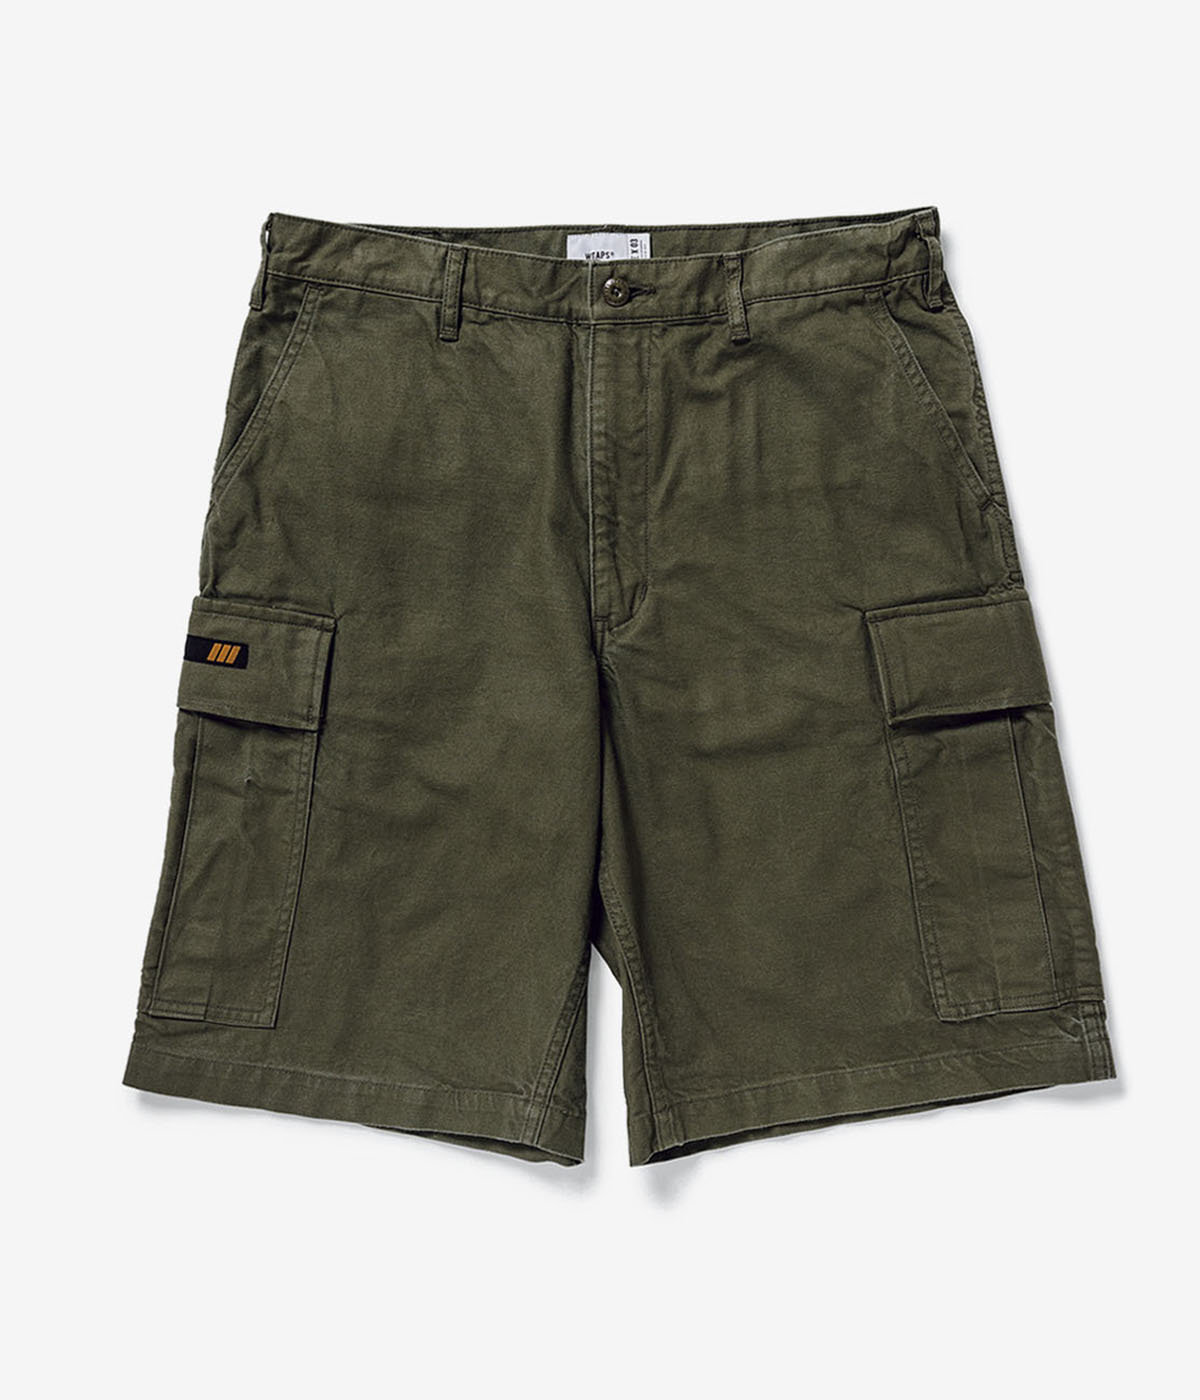 JUNGLE SHORTS / TROUSERS. COTTON. SERGE